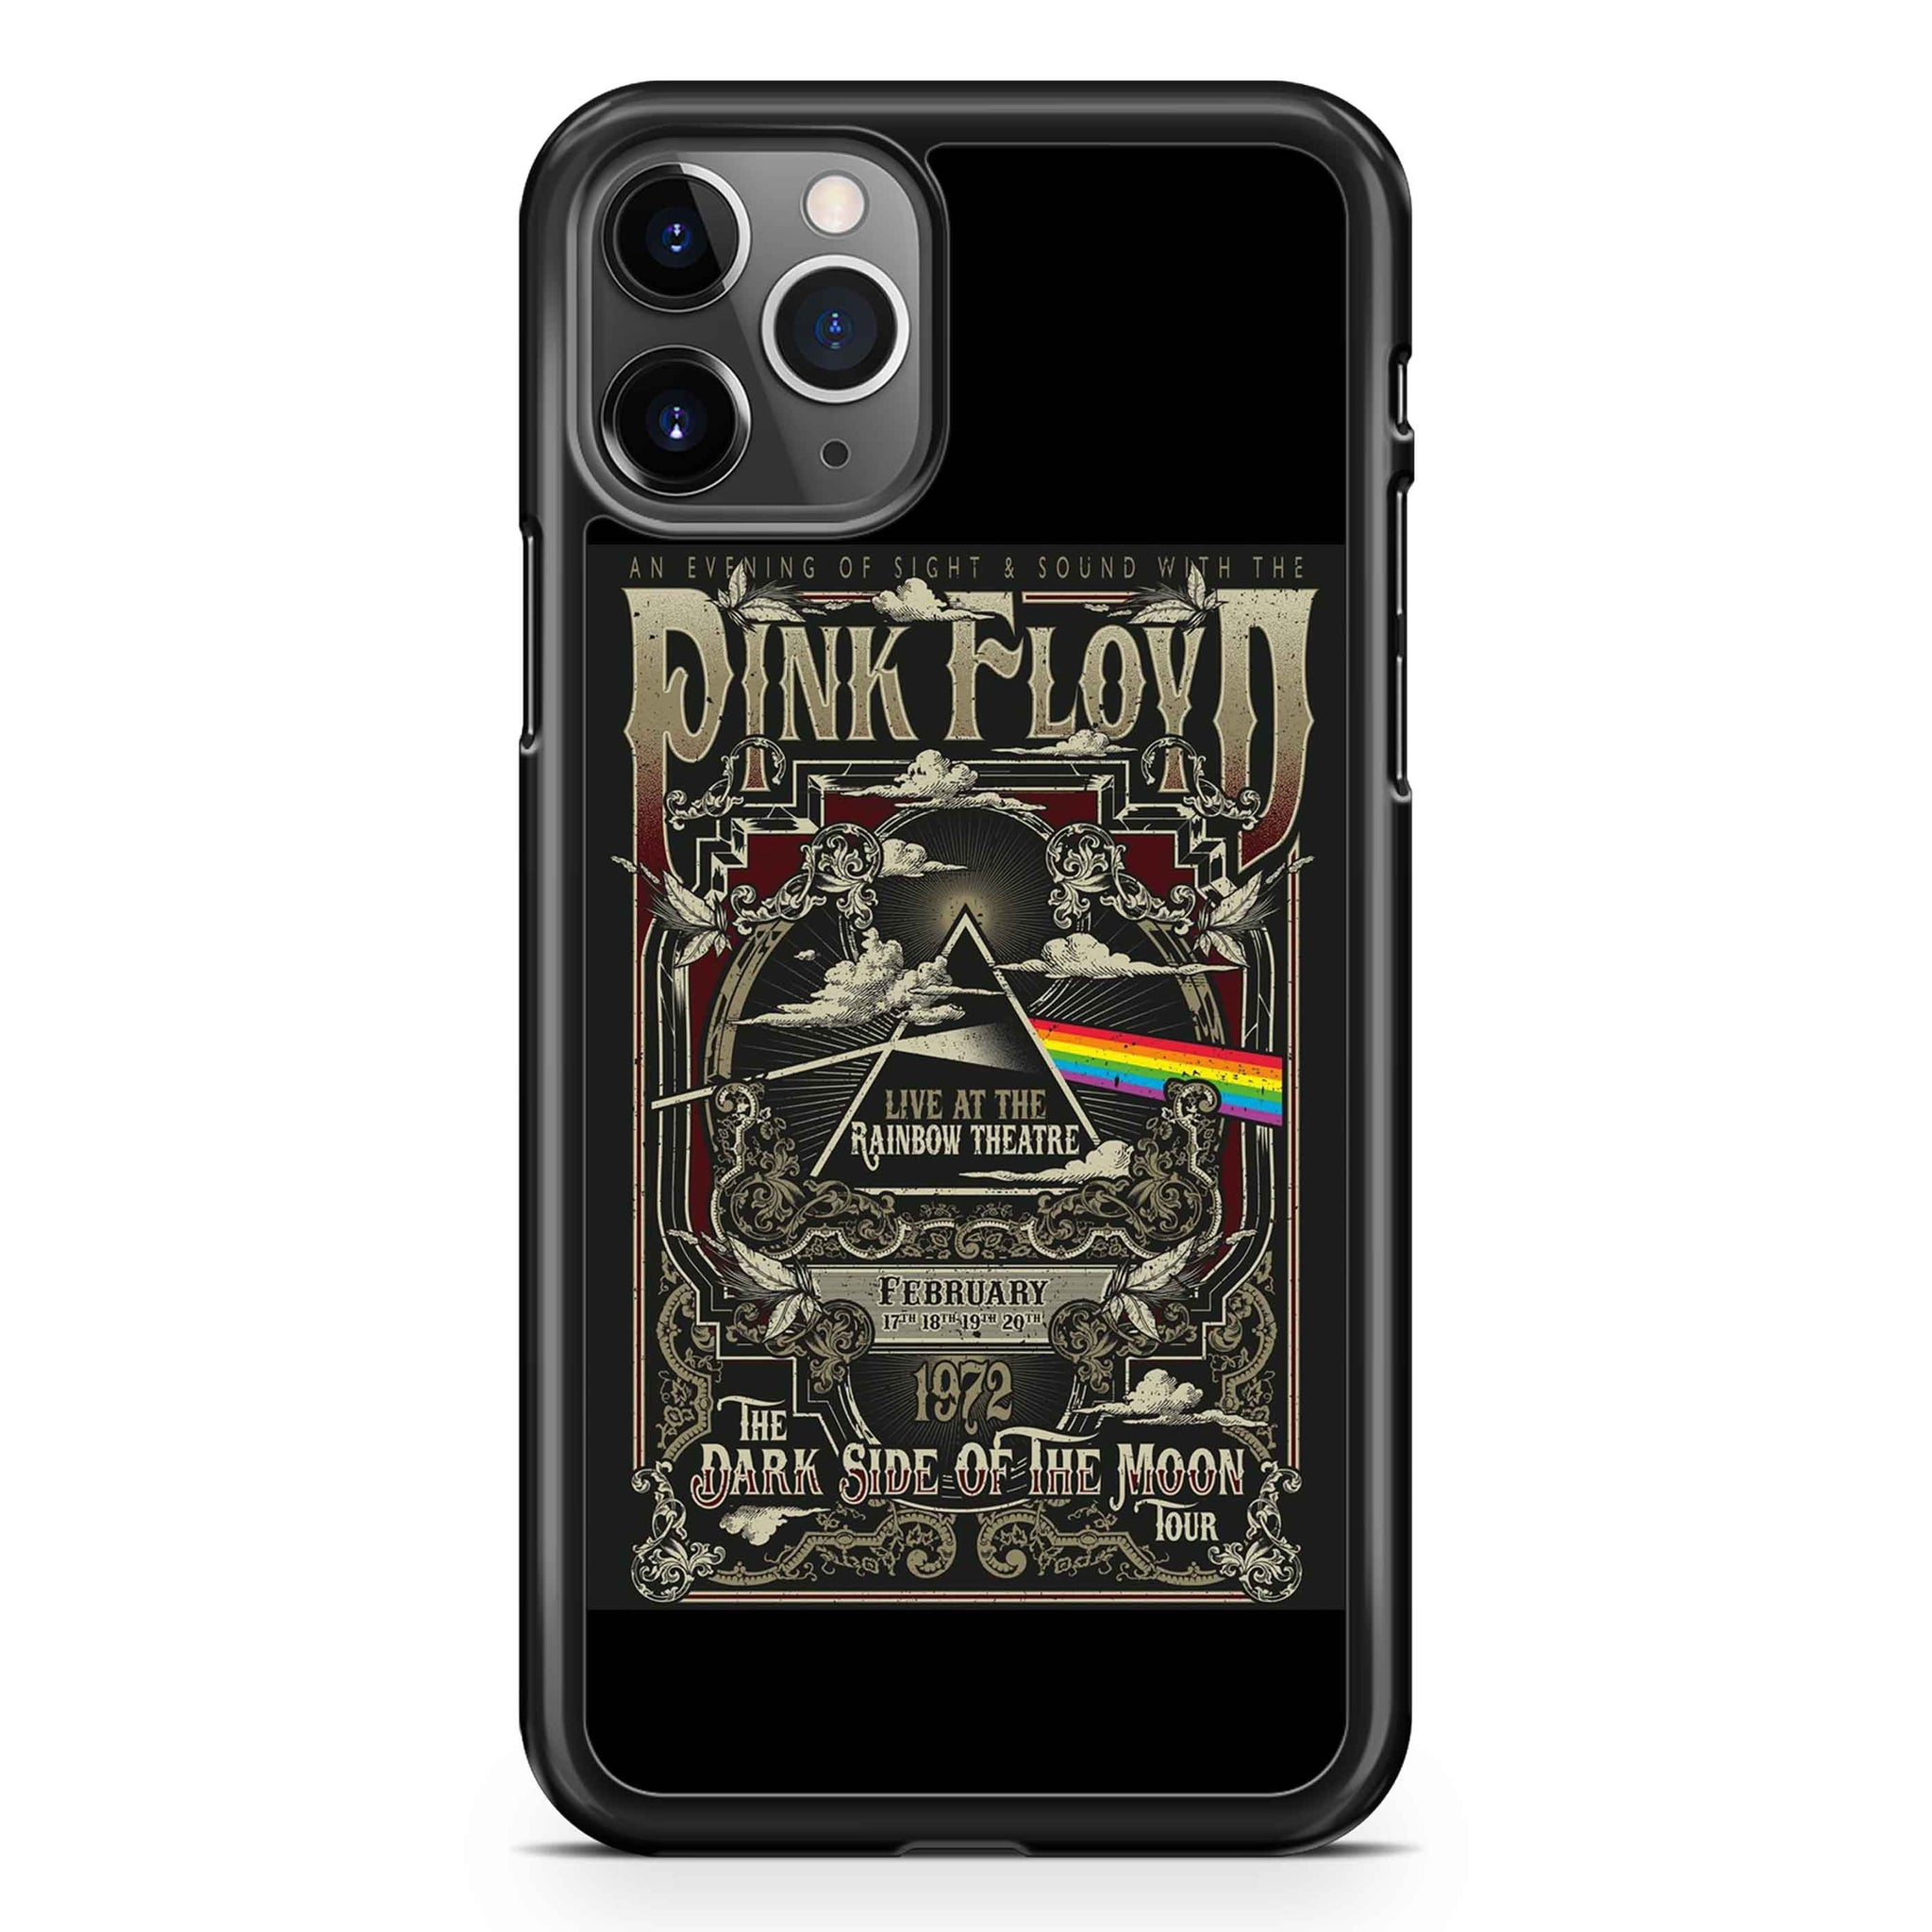 Pink Floyd Rainbow Theatre iPhone 11 / 11 Pro / 11 Pro Max Case